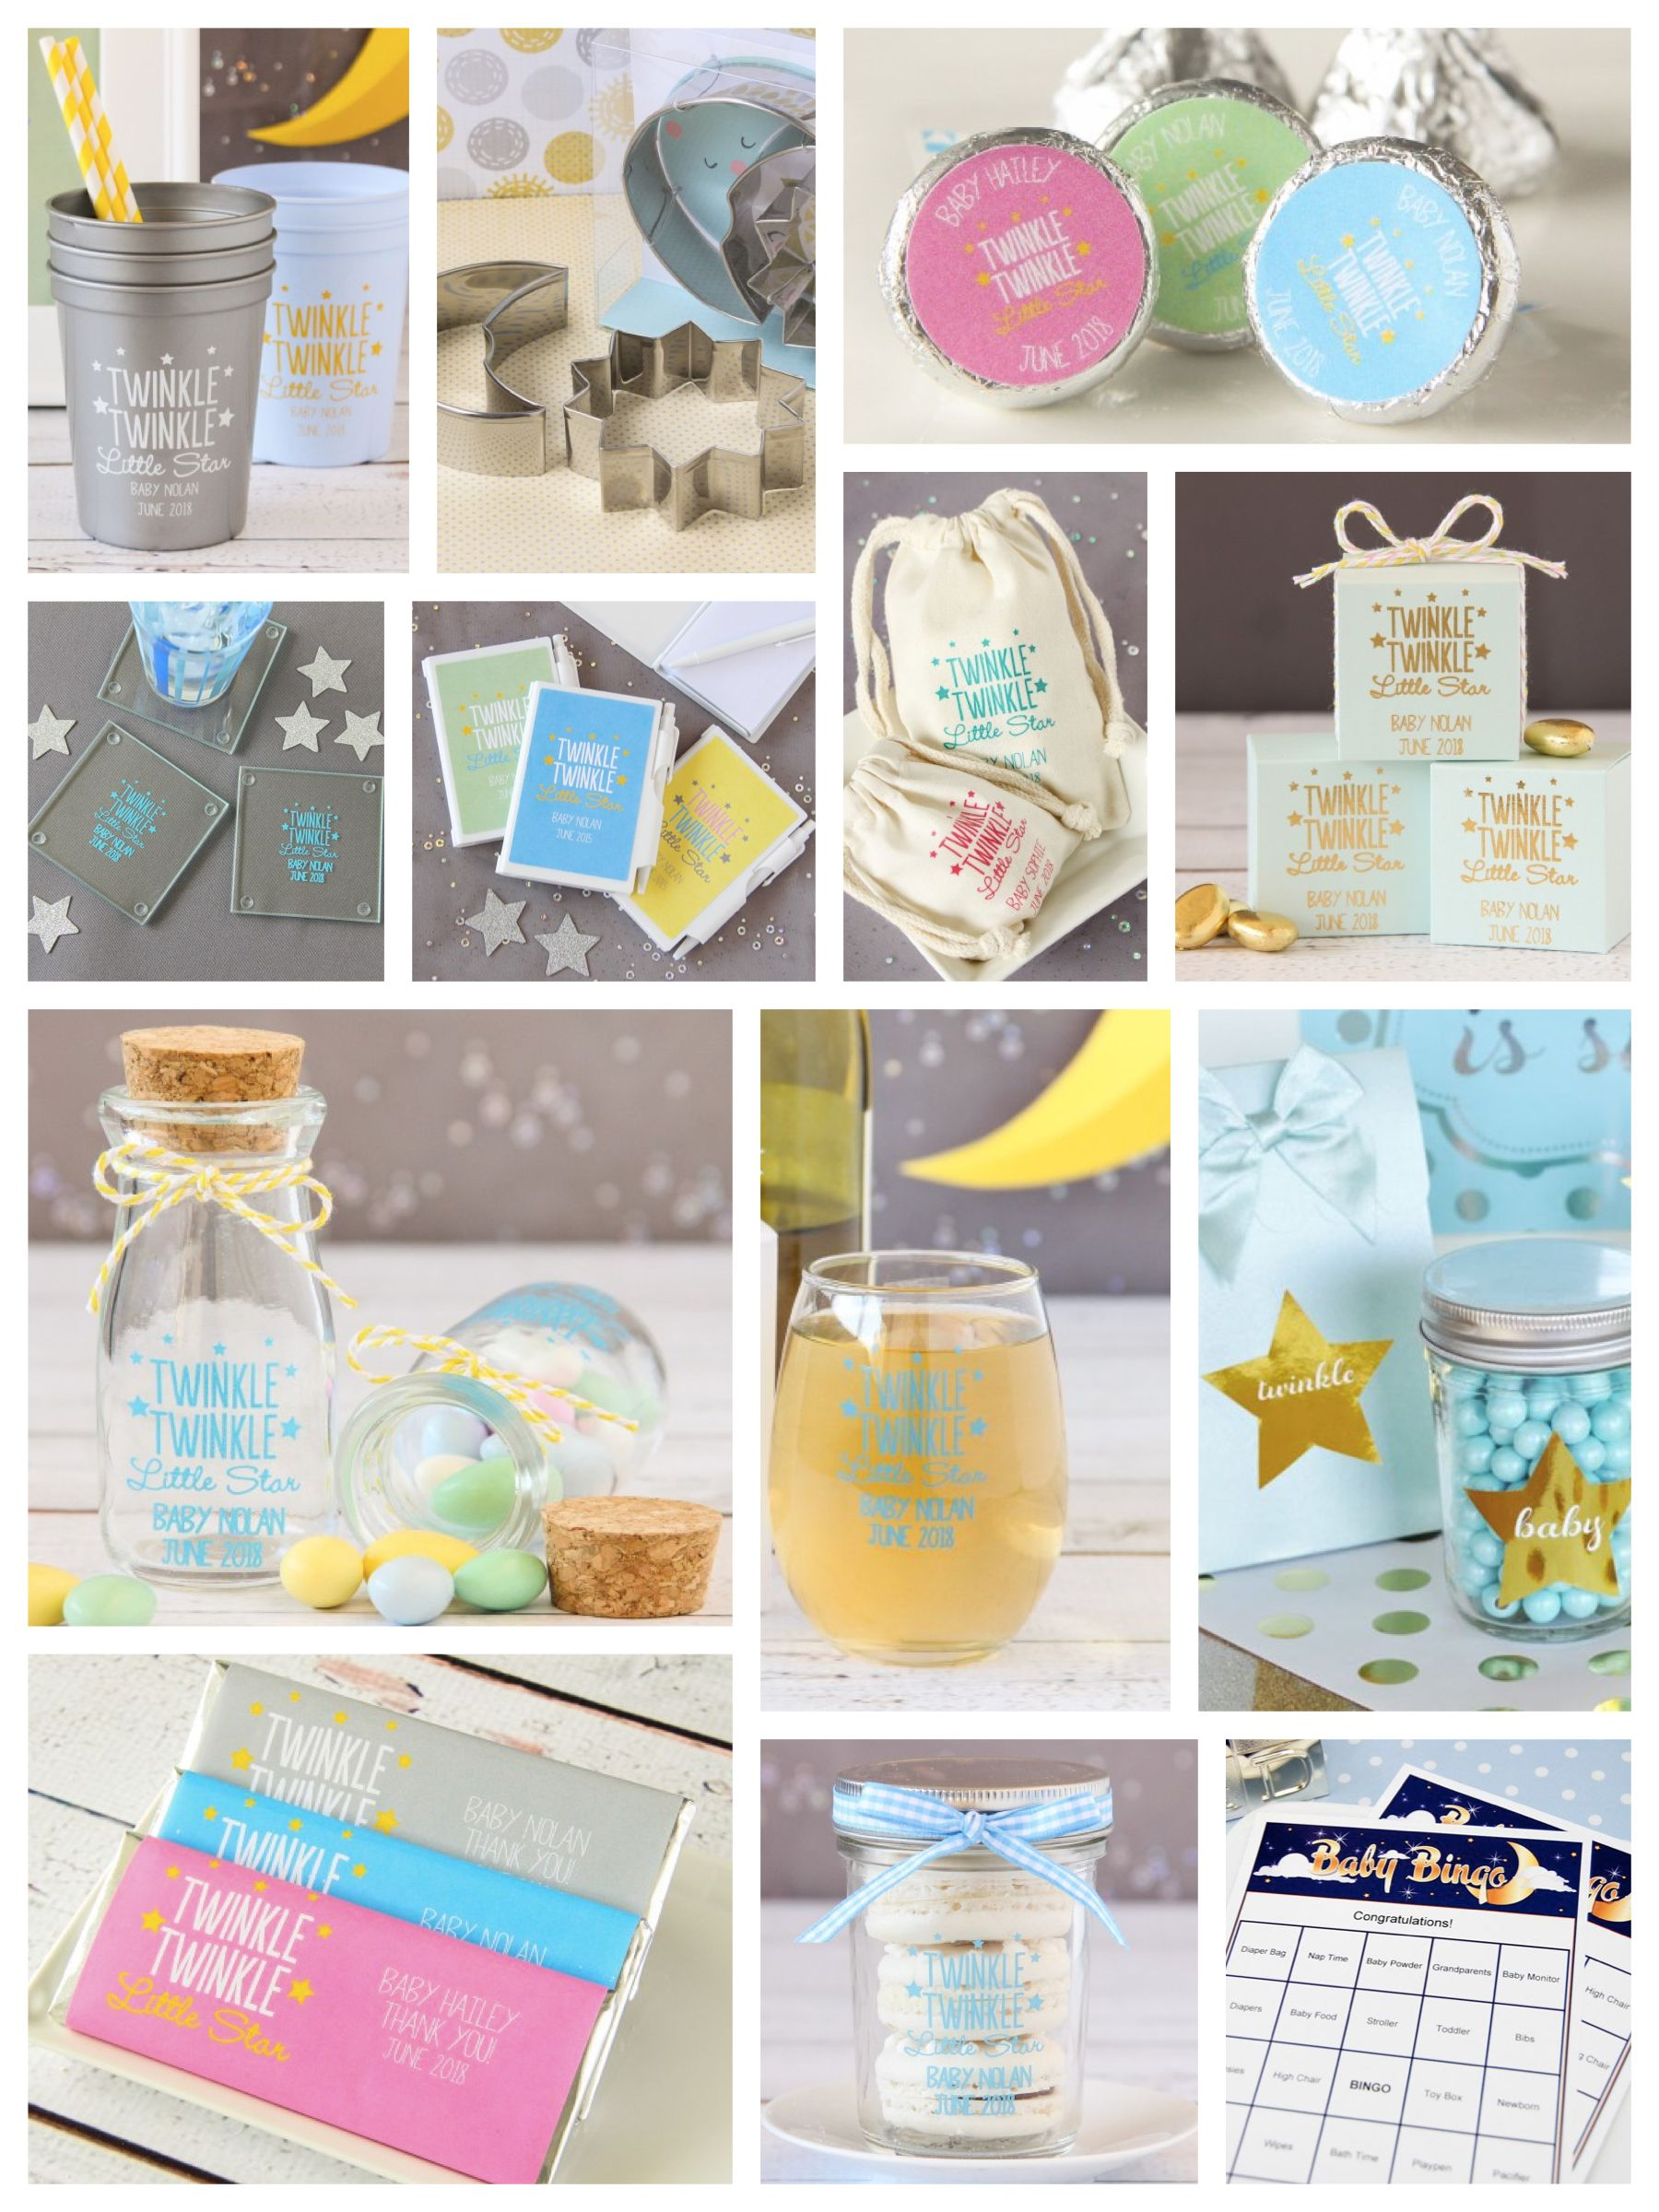 twinkle twinkle little star baby shower theme is the perfect party